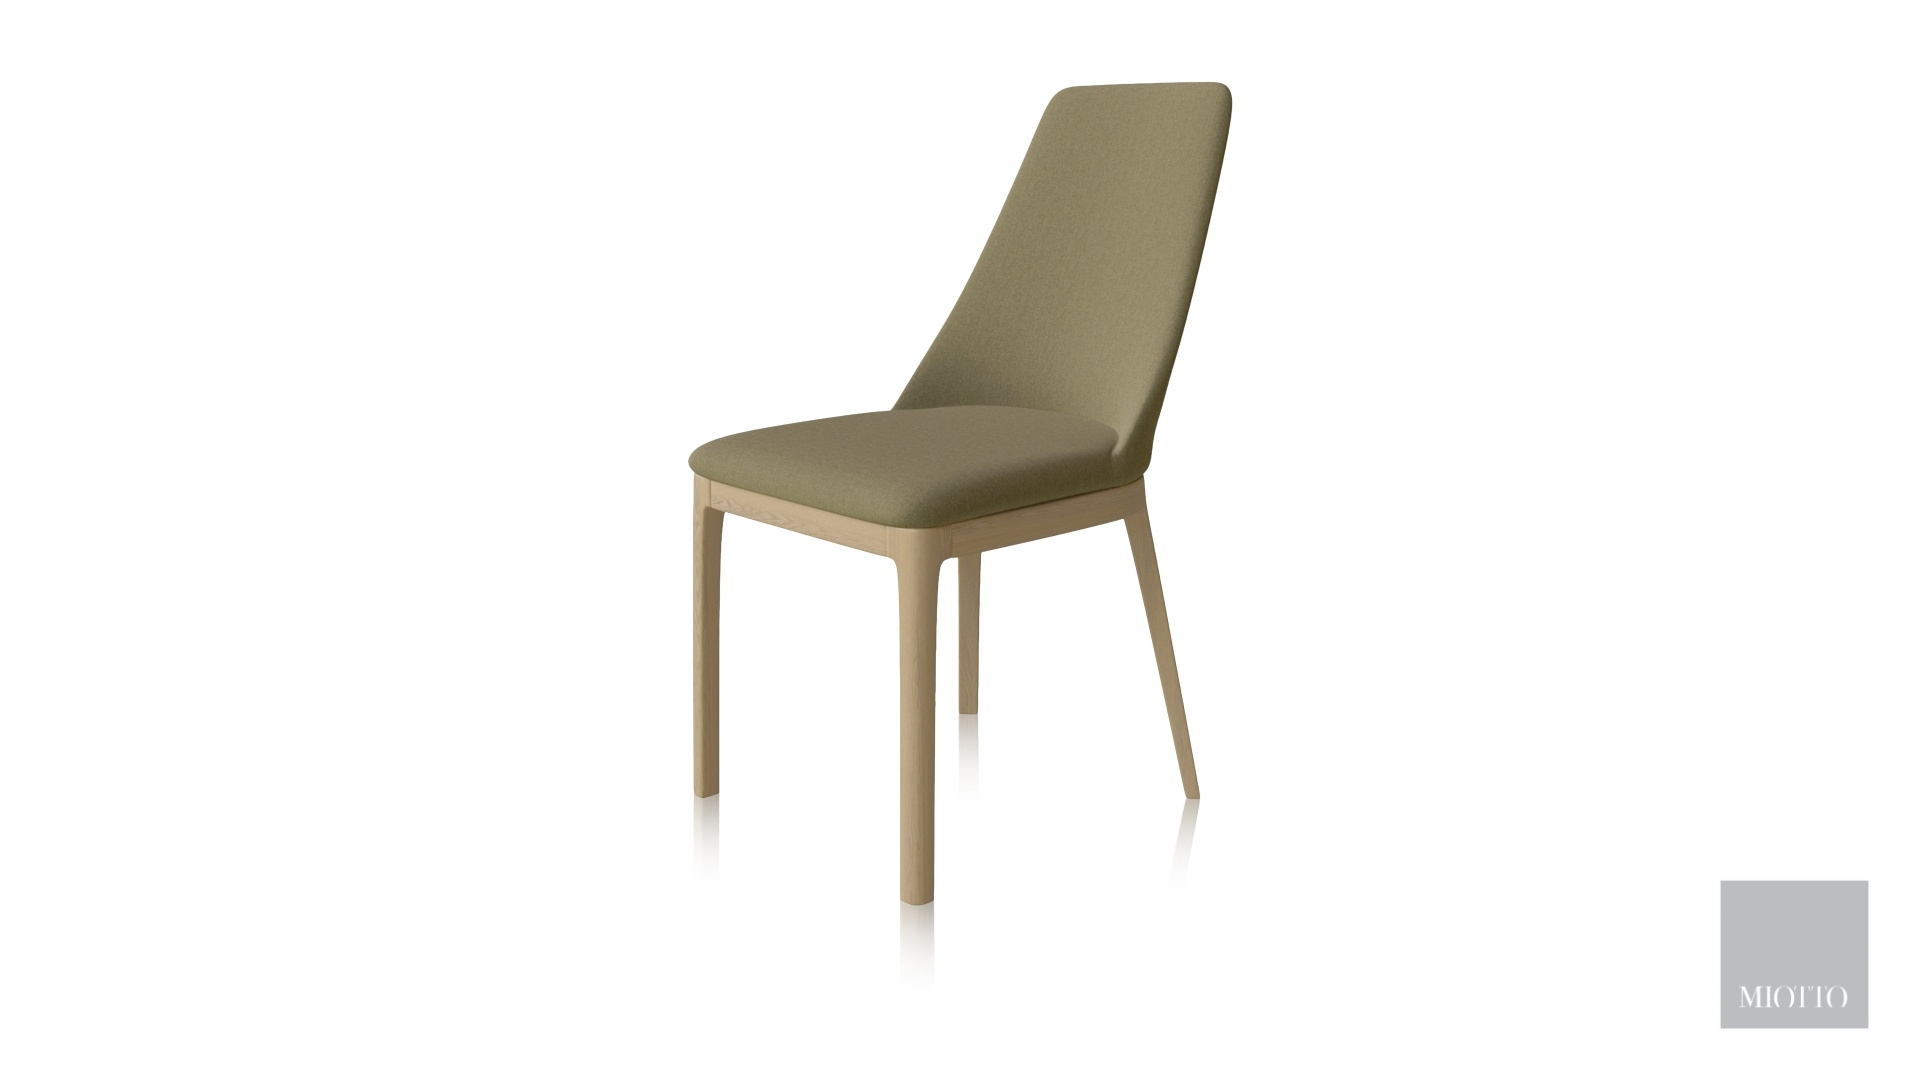 miotto_Romeo light dining chair miotto furniture